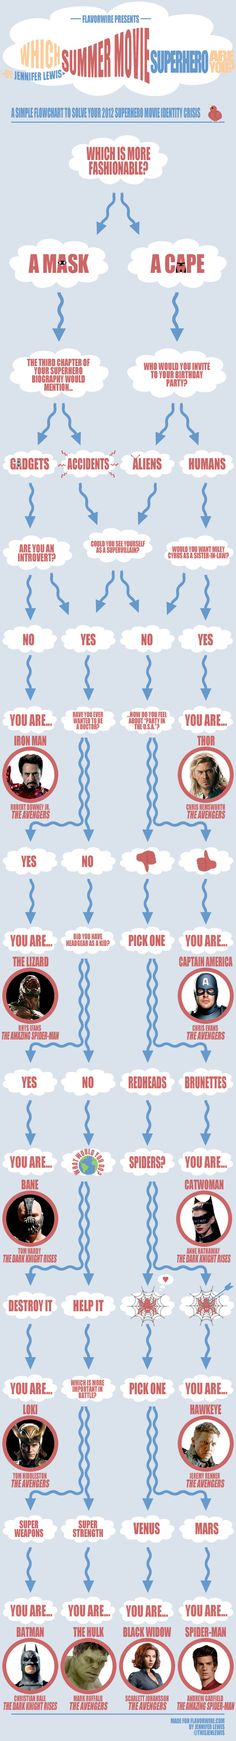 I was split on a question. One way I ended up with Hawkeye, the other I ended up with Loki. I'm completely fine with both ;-)